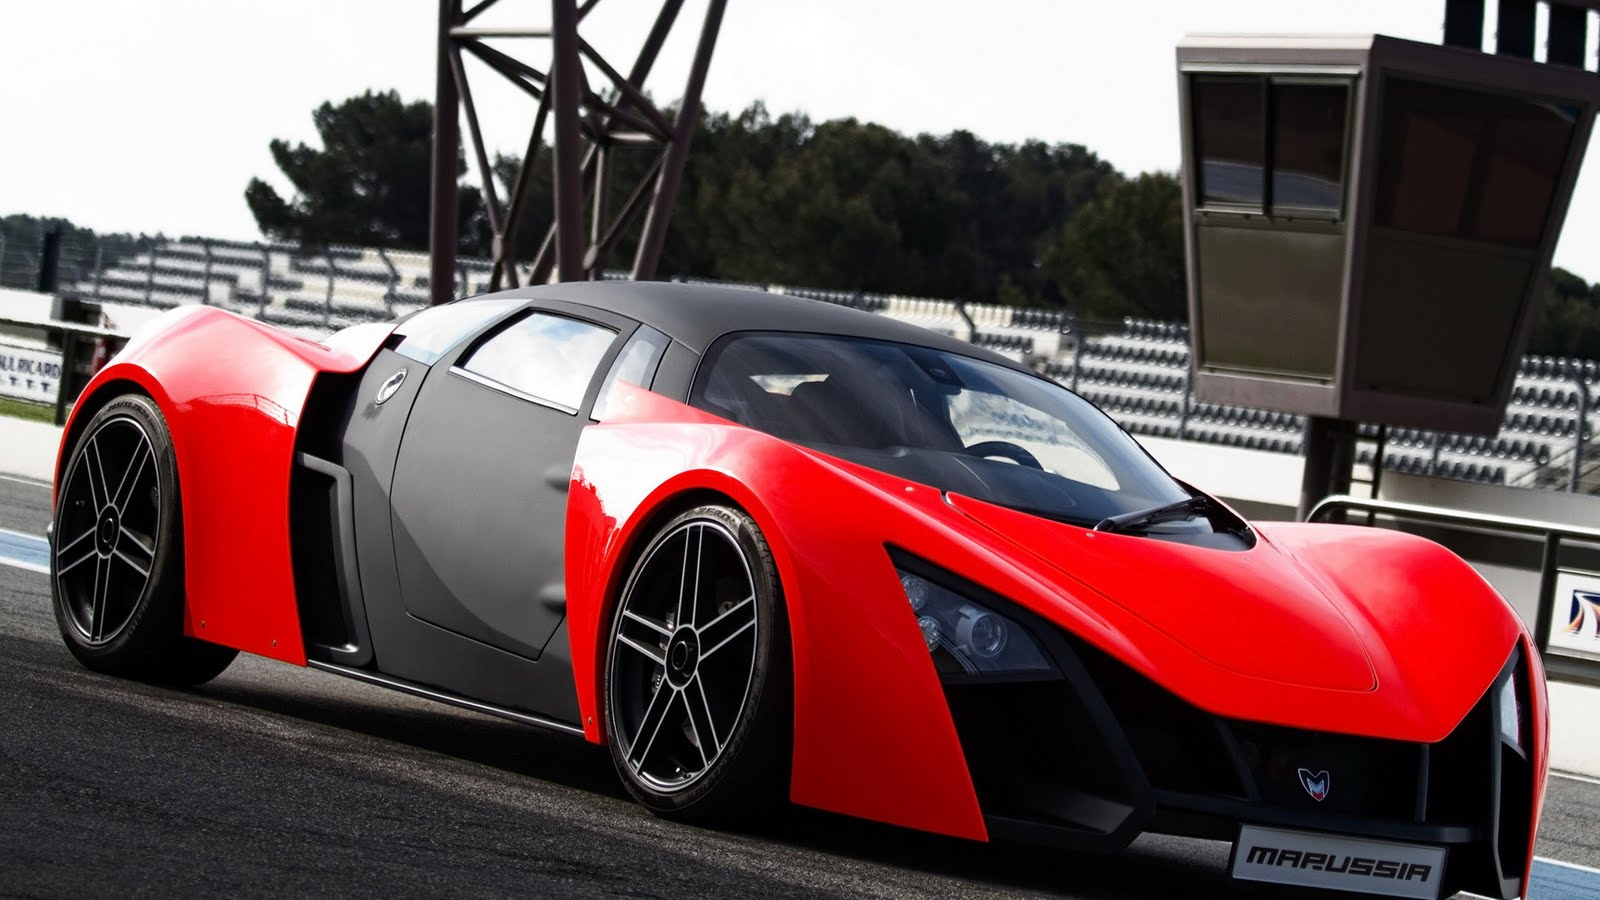 Pic Of Supercar In High Definition